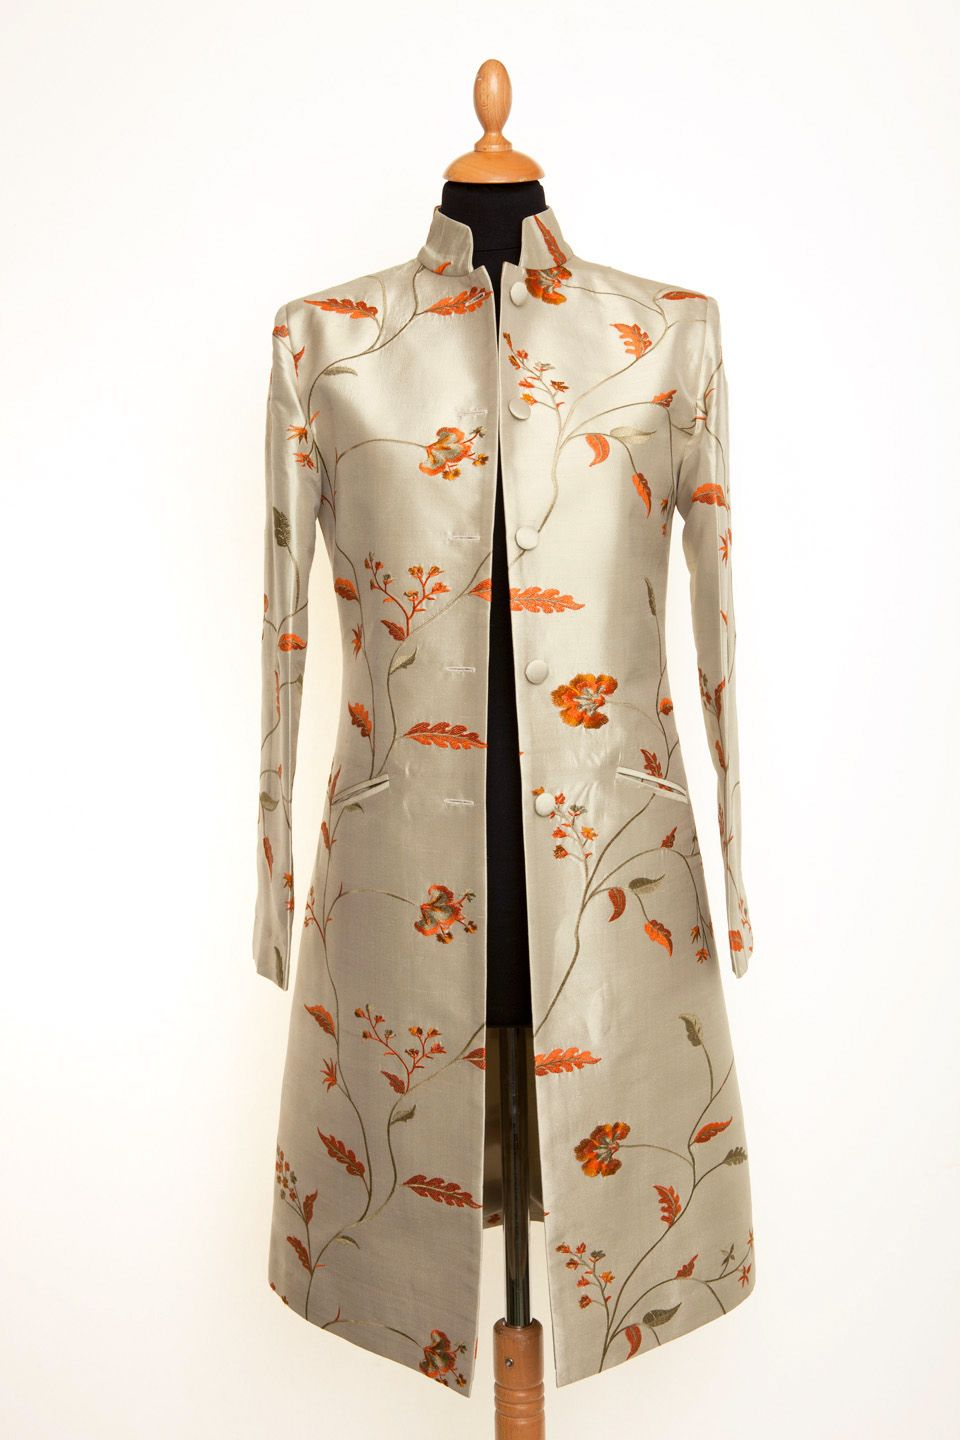 d280e37b5b2 Silk Nehru Coat in Soft Pistachio - £335 #silk #coat #fashion #women  #shibumi